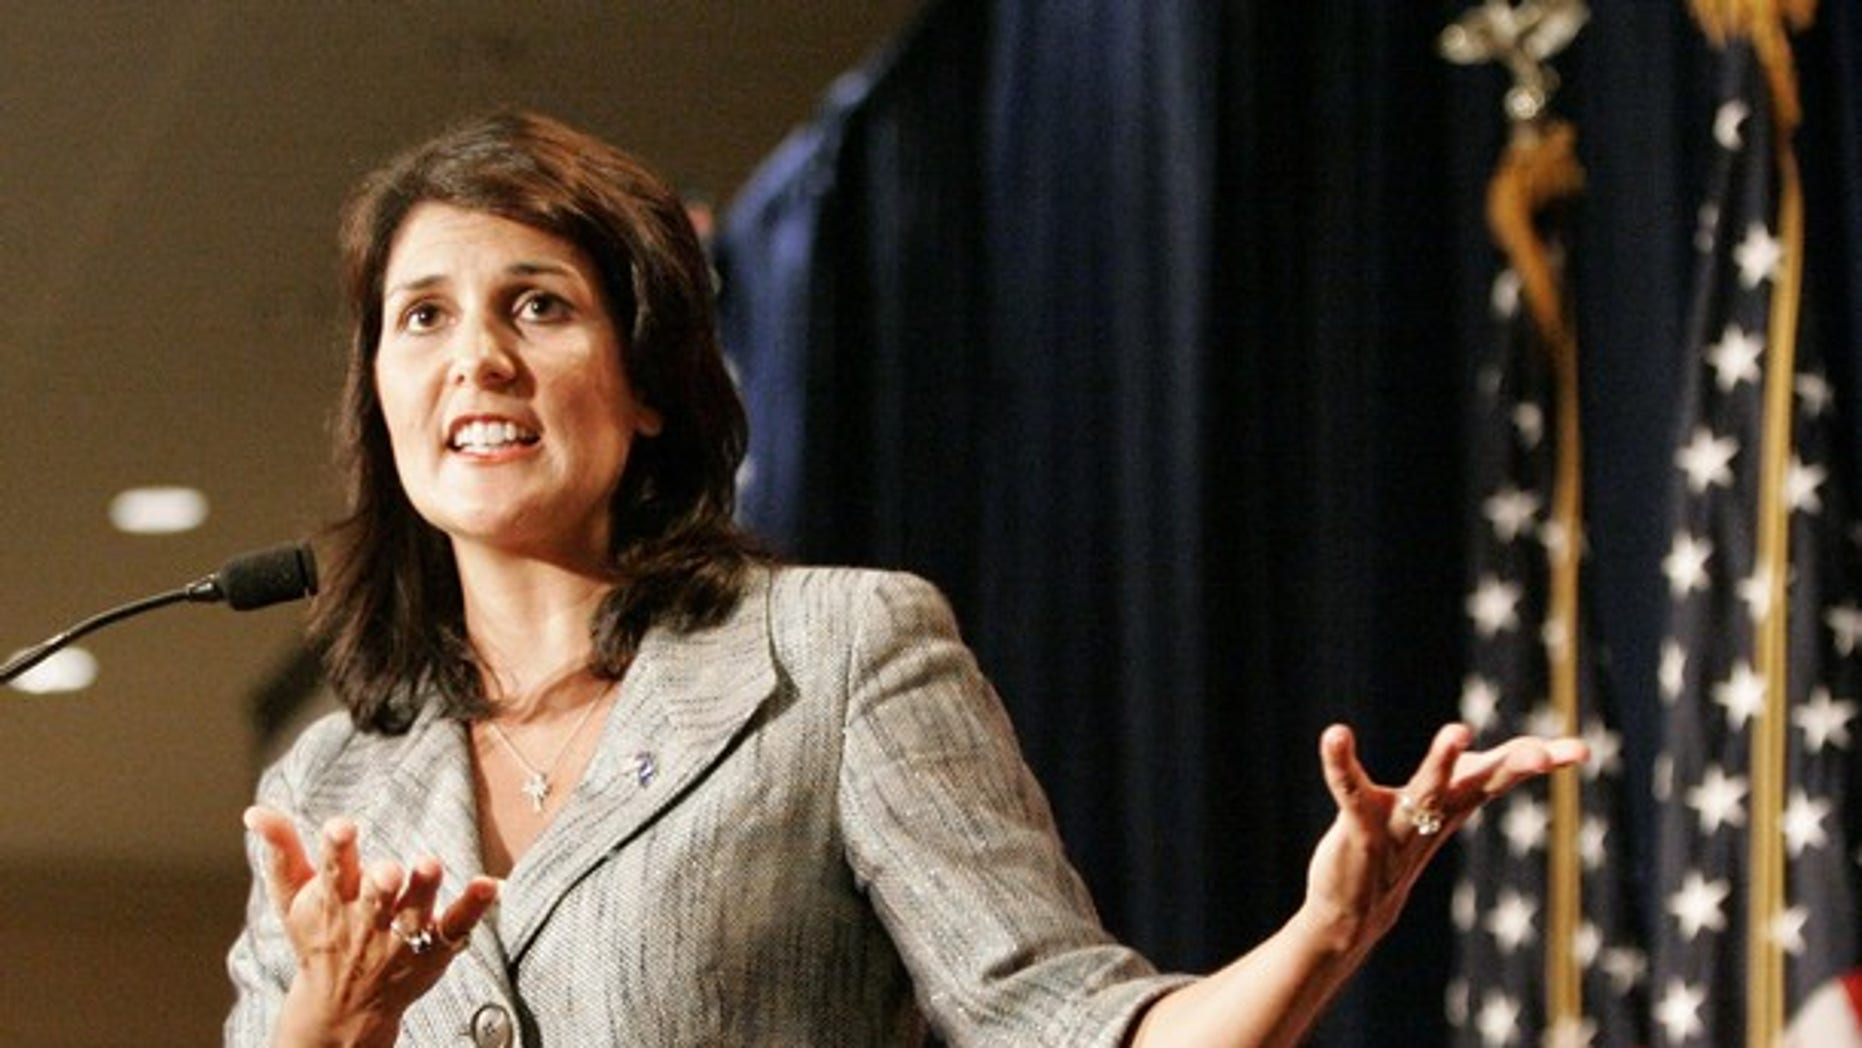 South Carolina's Governor Nikki Haley gestures as she address the RedState Gathering of conservative activists in Charleston, South Carolina, August 13, 2011.